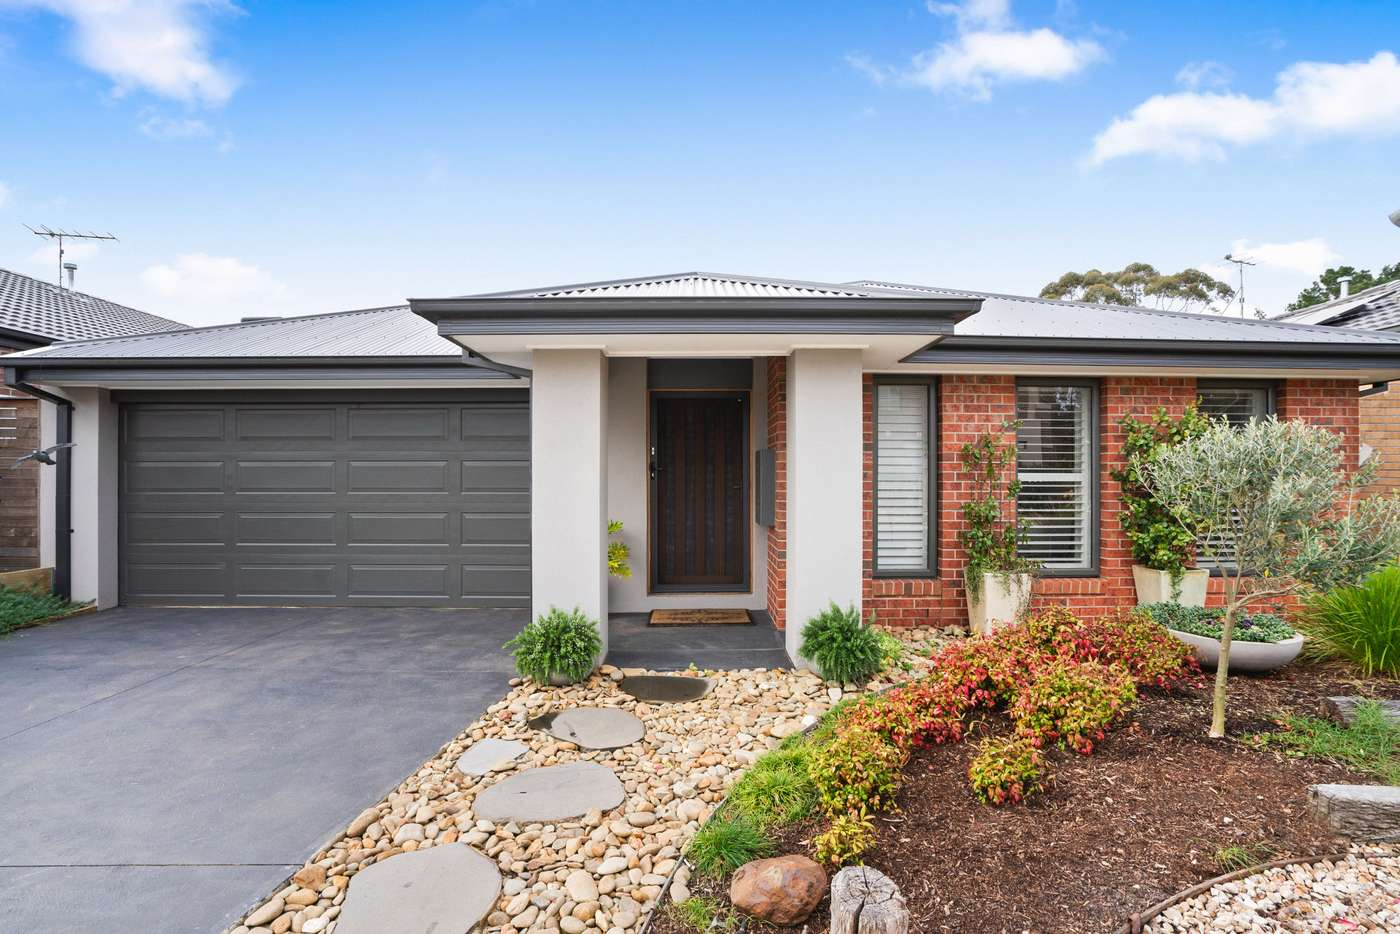 Main view of Homely house listing, 17 Spotted Gum Drive, Lara VIC 3212